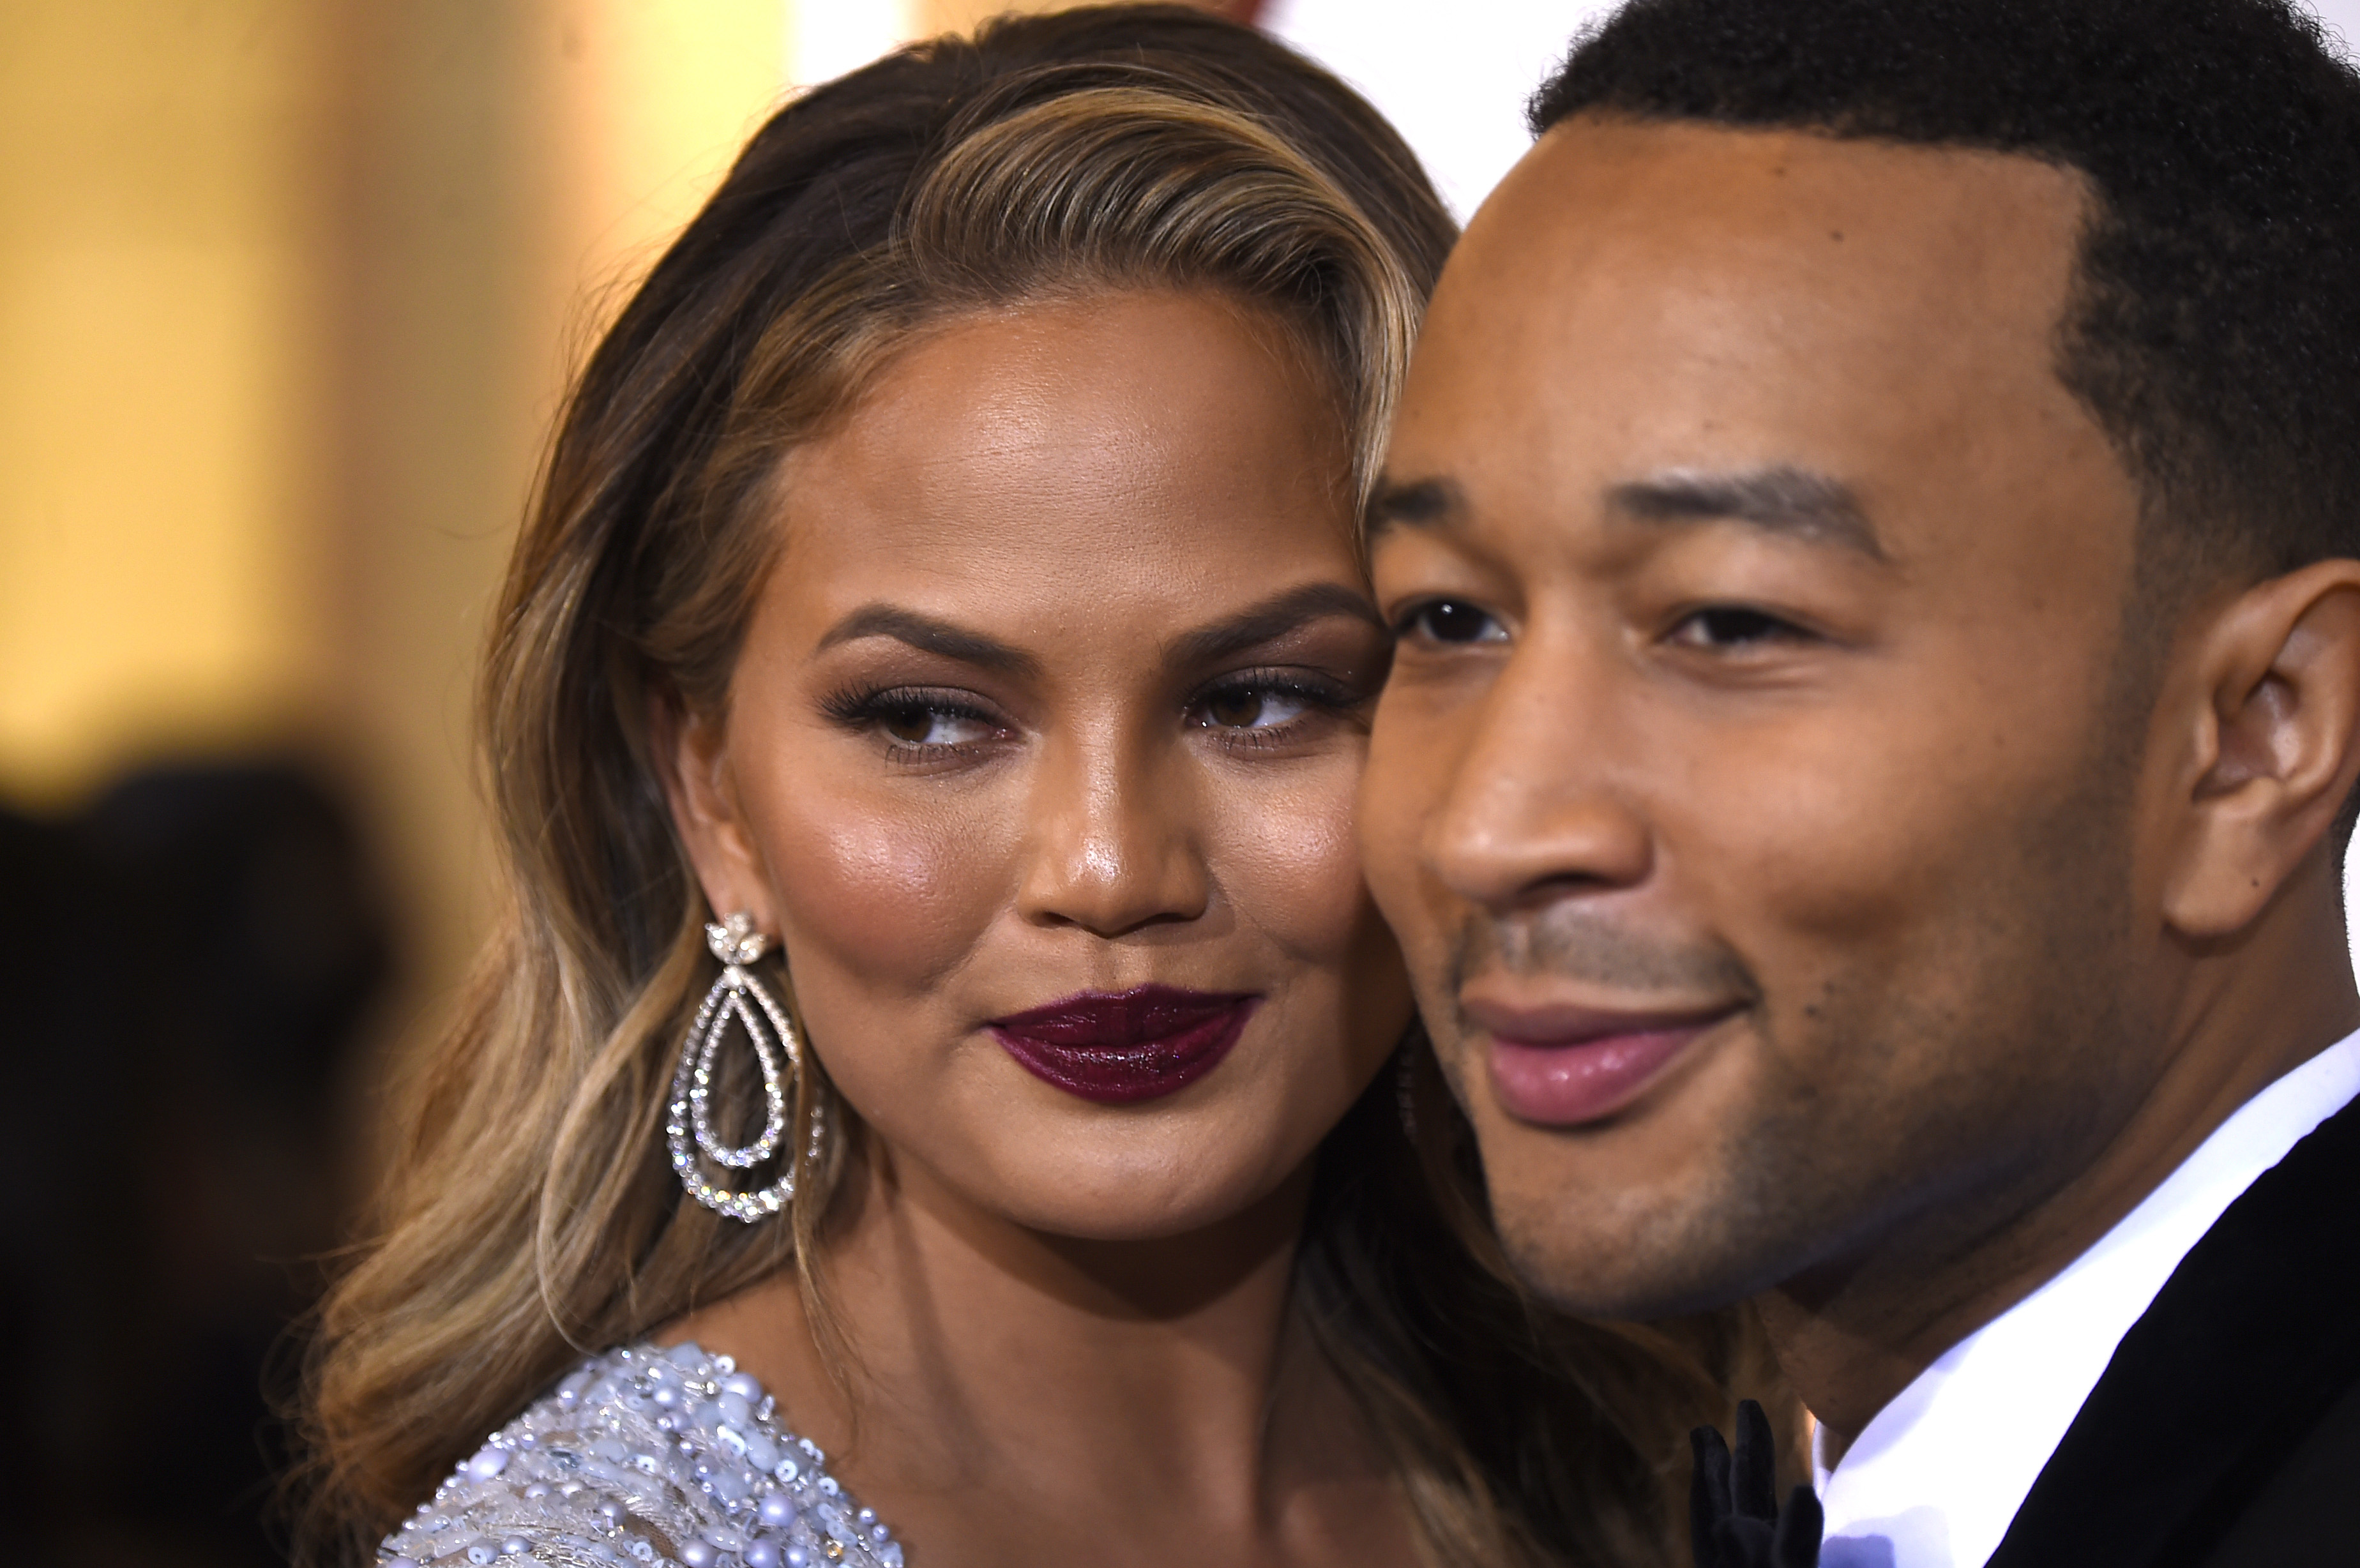 John Legend proves once again why he's the feminist husband of our dreams